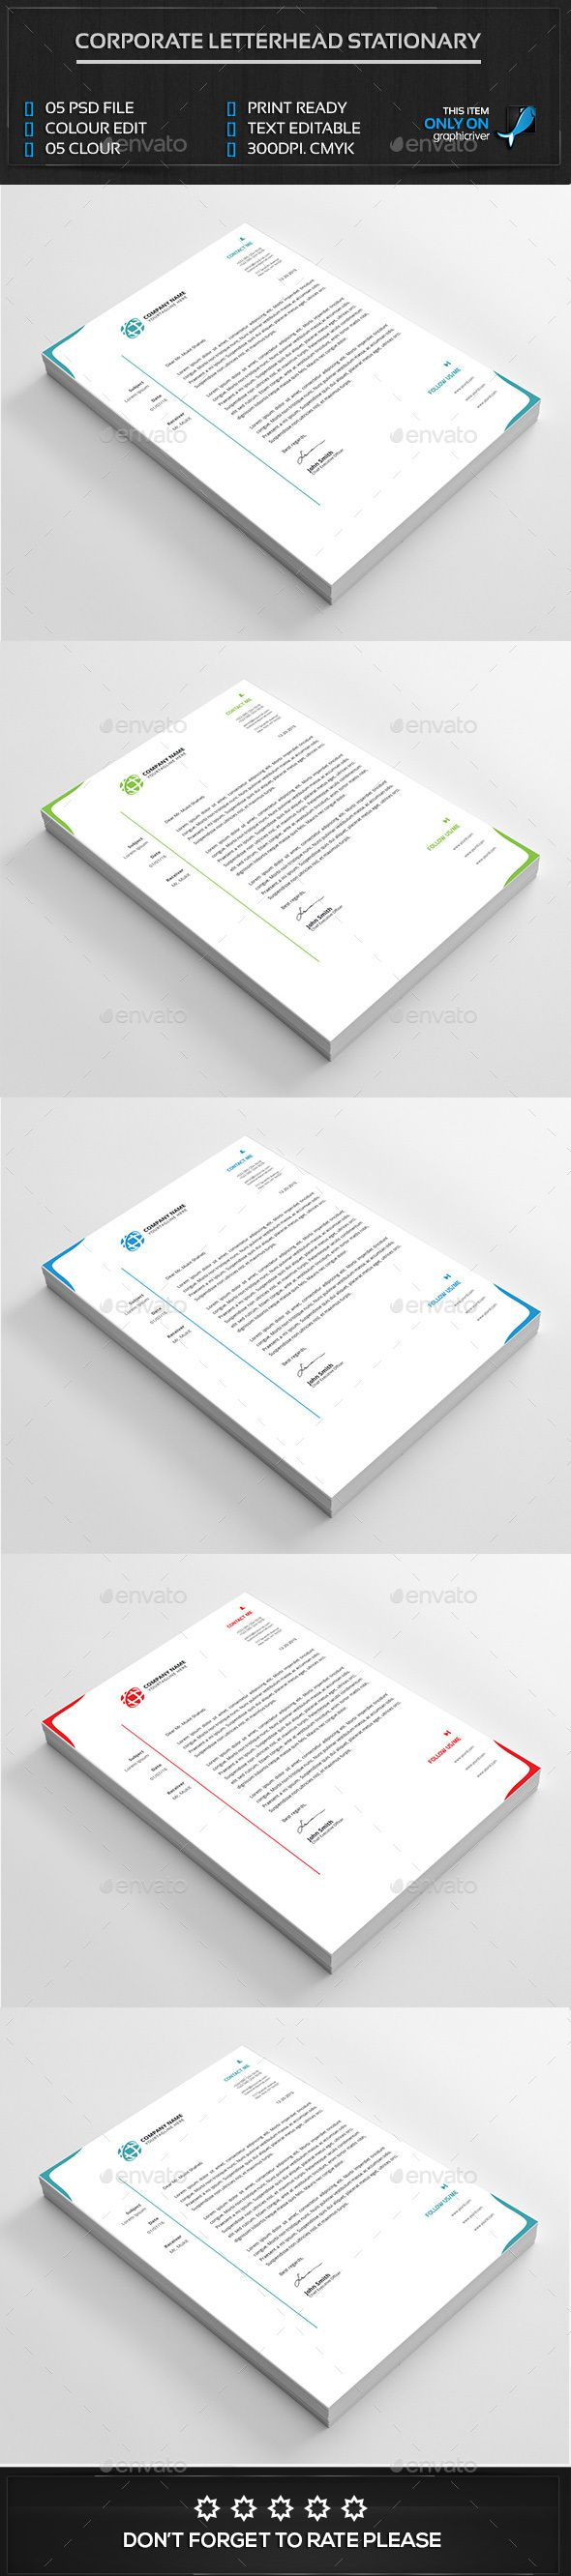 #Corporate Letterhead Design.Download here: http://graphicriver.net/item/corporate-letterhead-design/14681220?ref=arroganttype